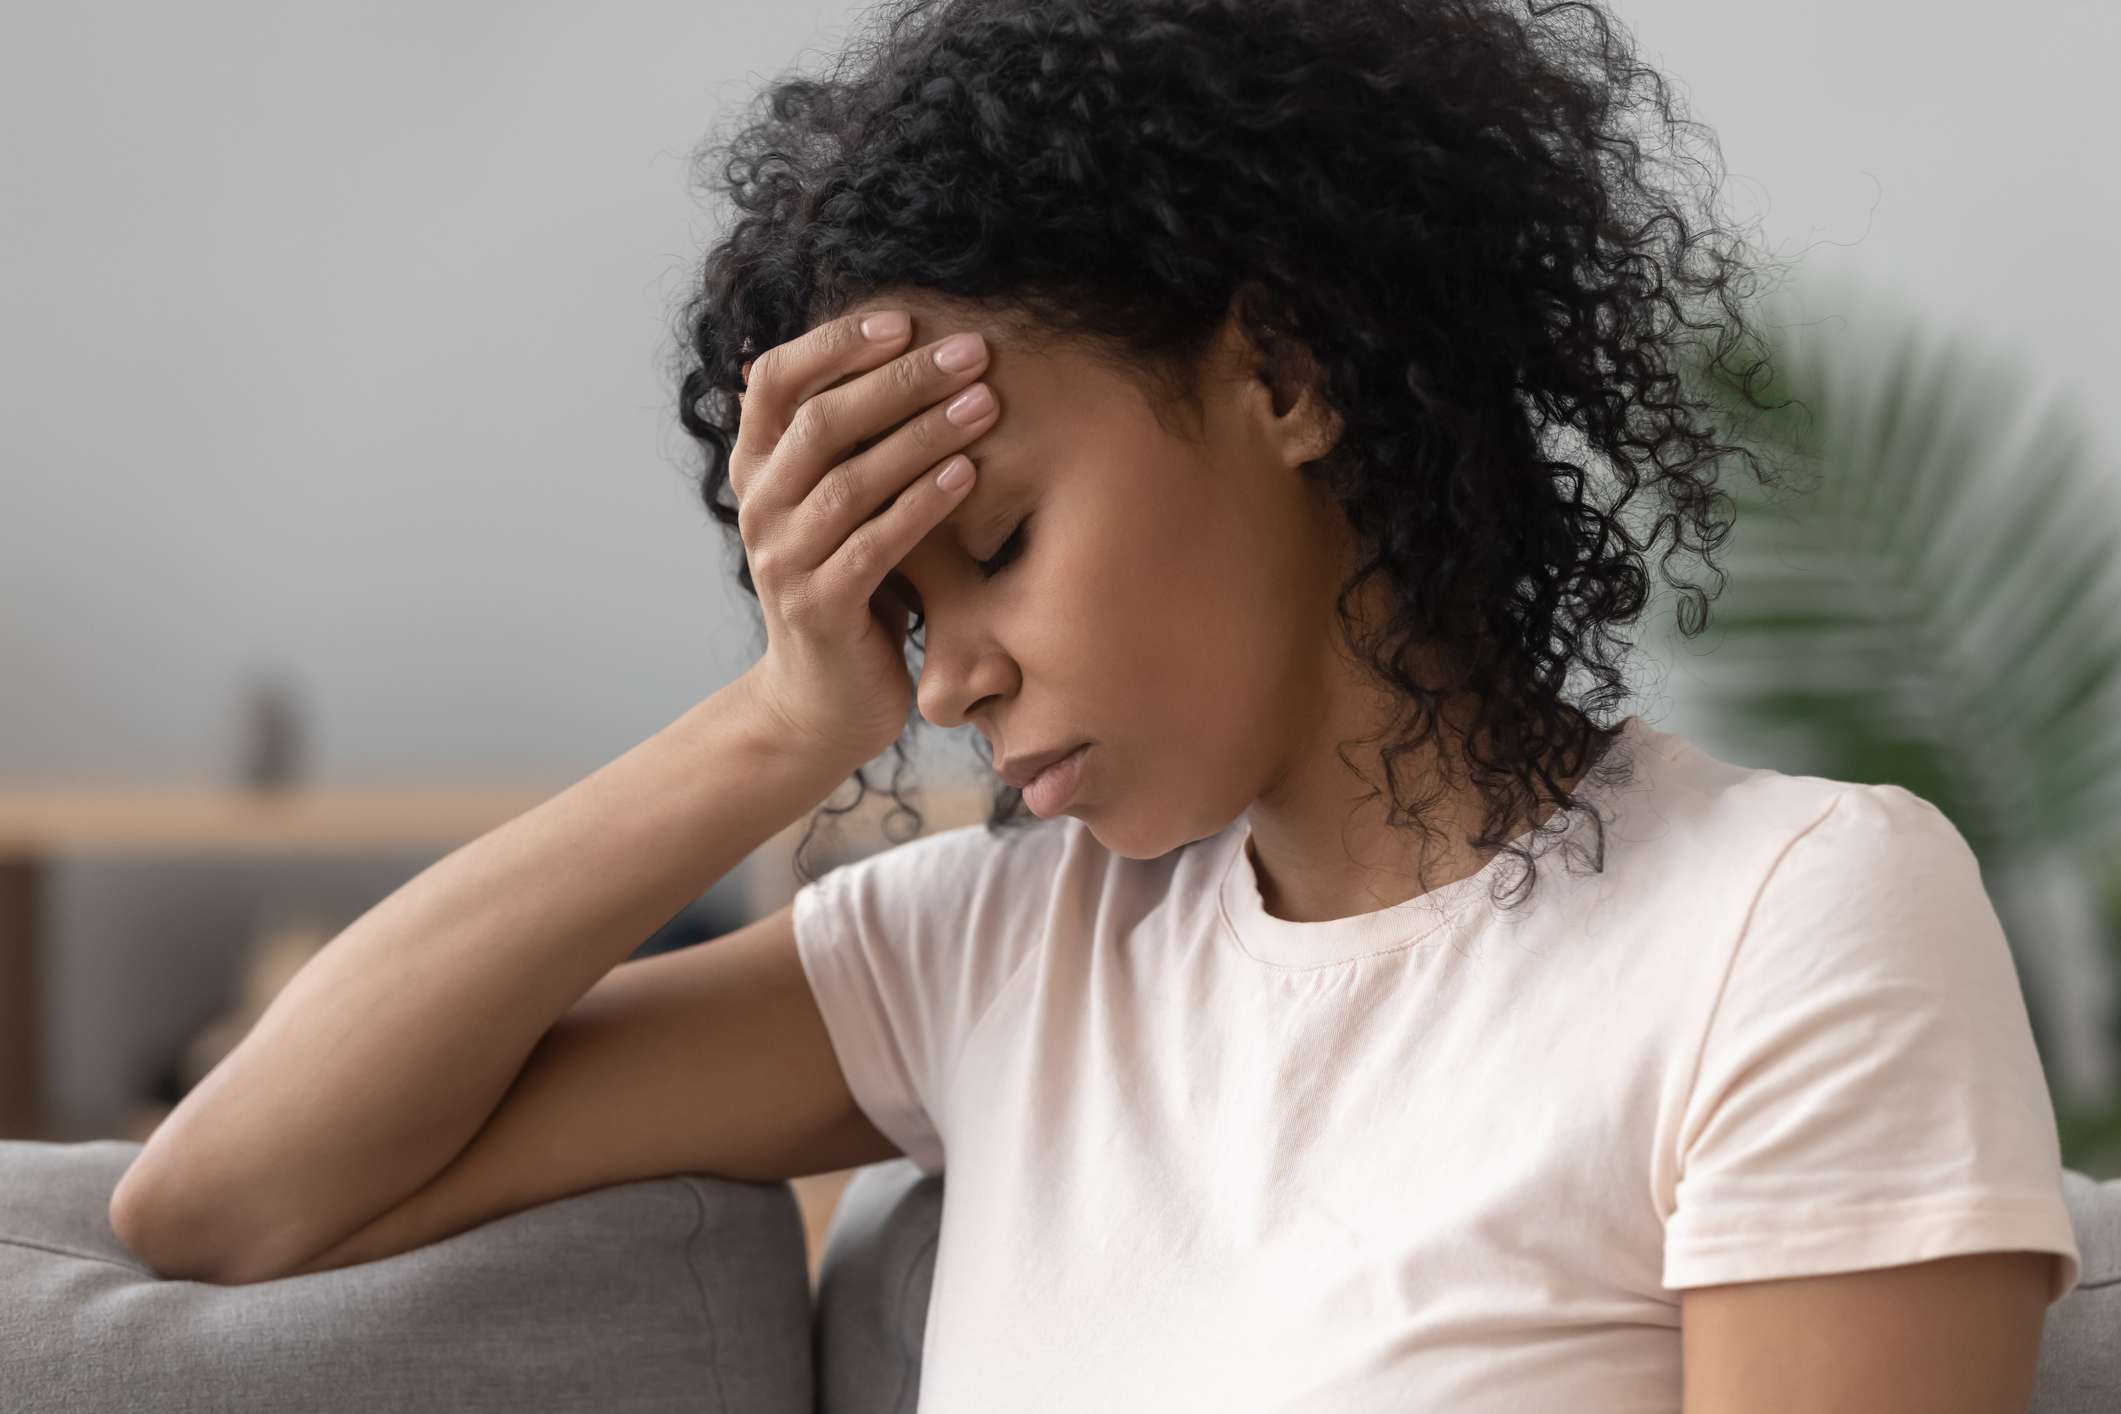 African woman sitting on couch feels unhappy having problems